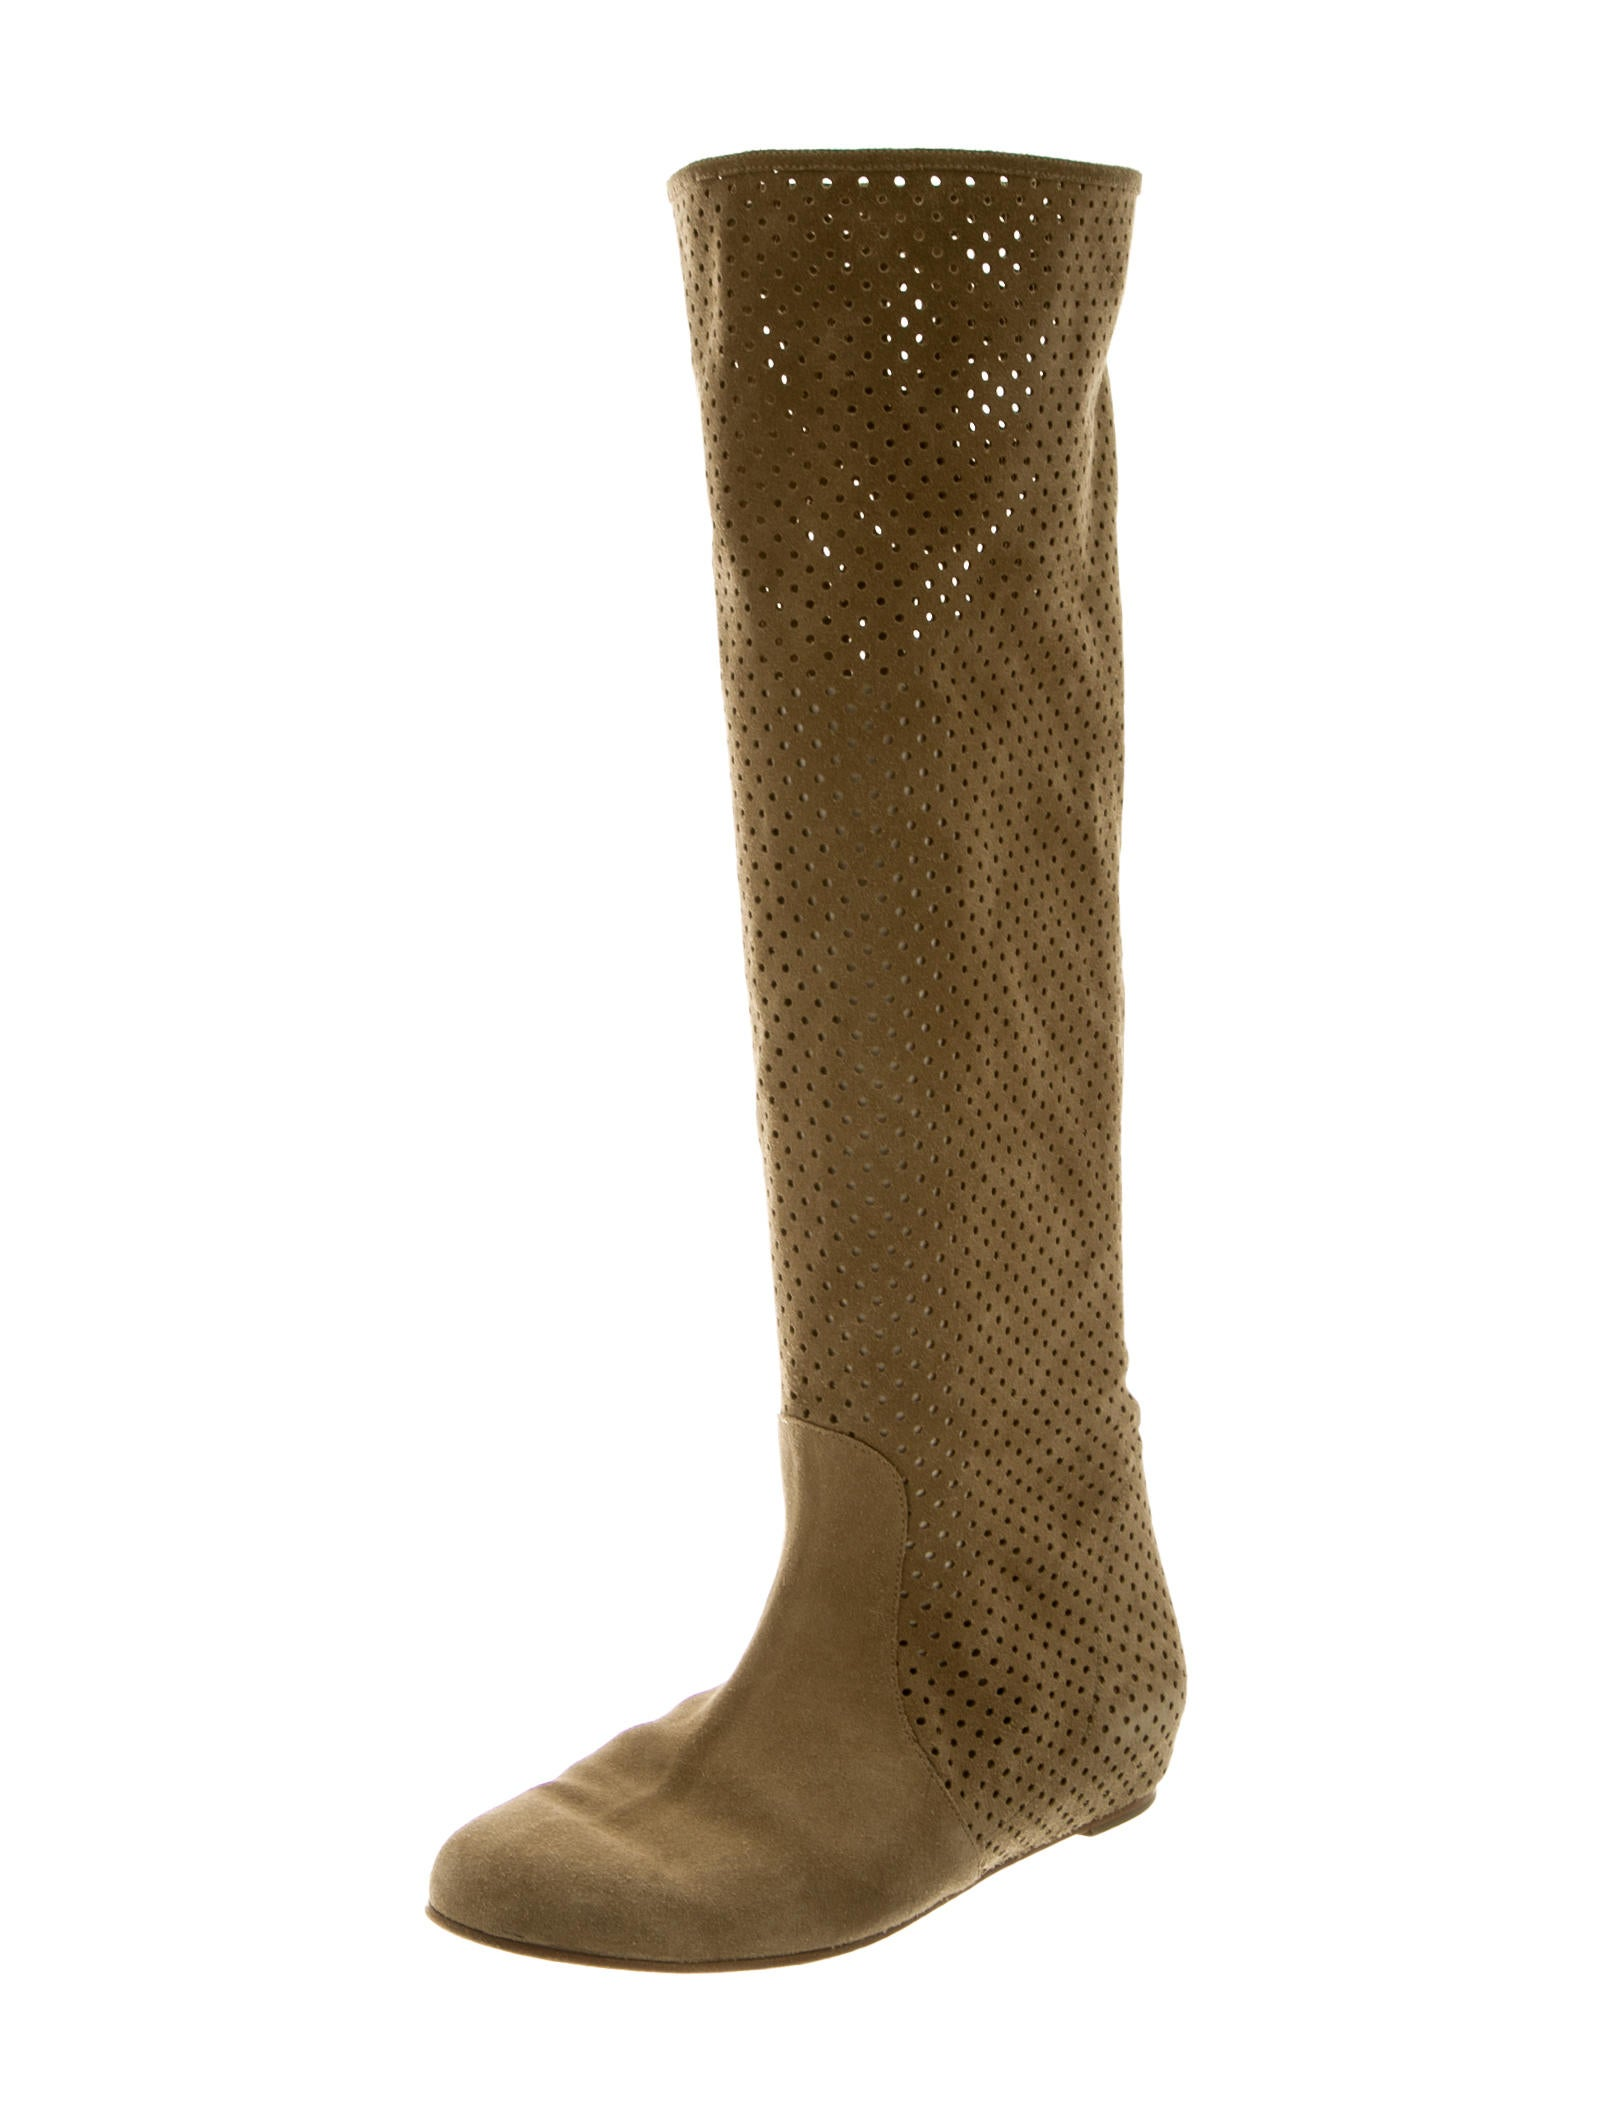 michael kors boots shoes mic28989 the realreal